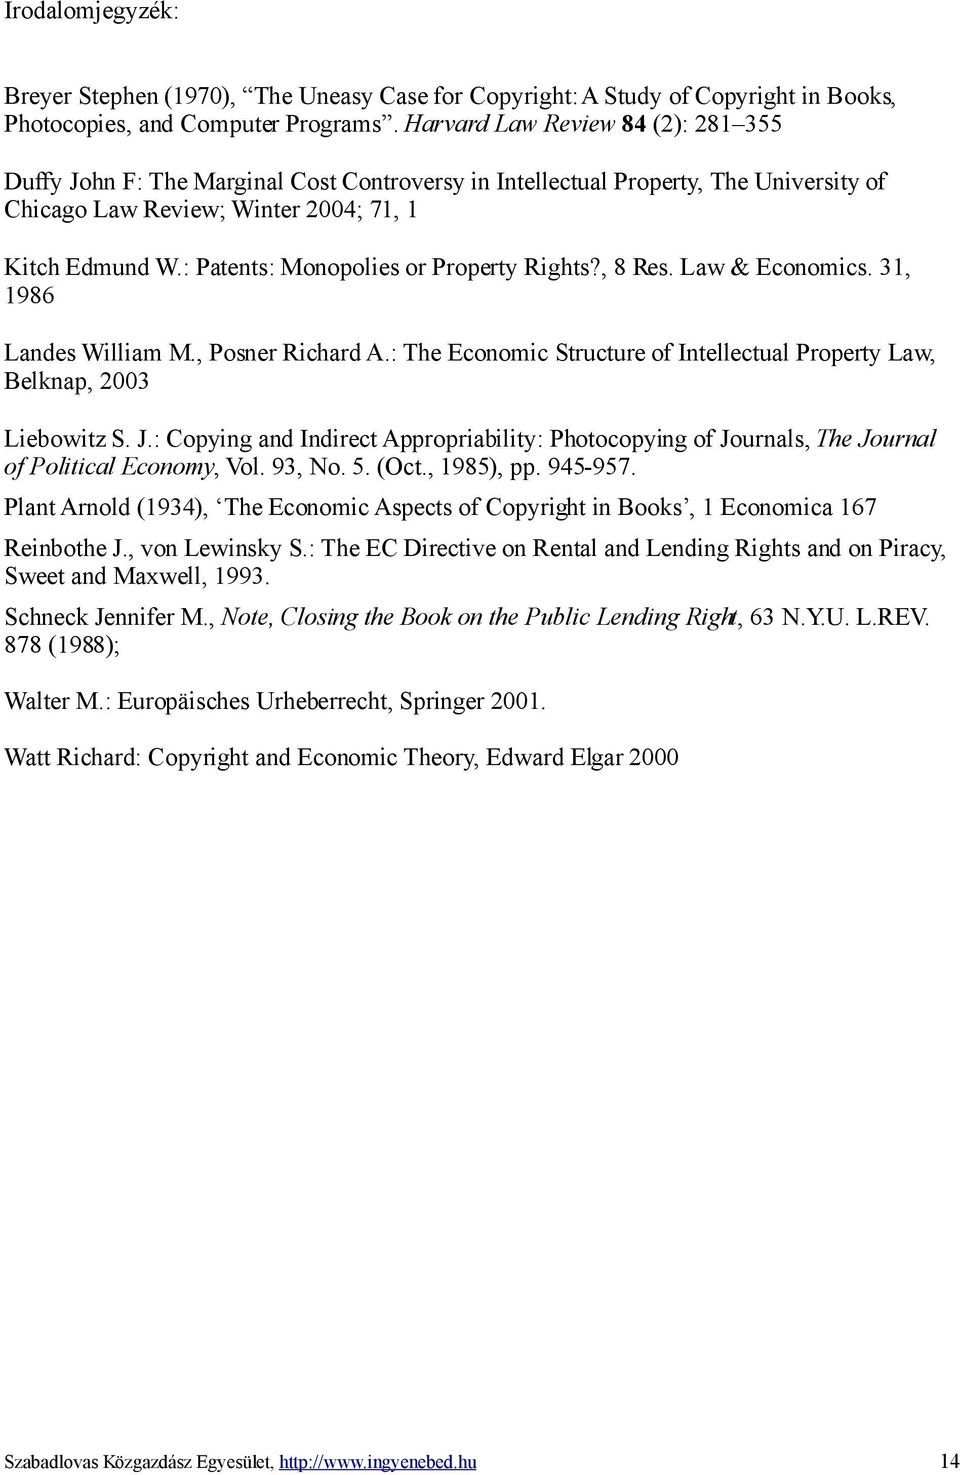 : Patents: Monopolies or Property Rights?, 8 Res. Law & Economics. 31, 1986 Landes William M., Posner Richard A.: The Economic Structure of Intellectual Property Law, Belknap, 2003 Liebowitz S. J.